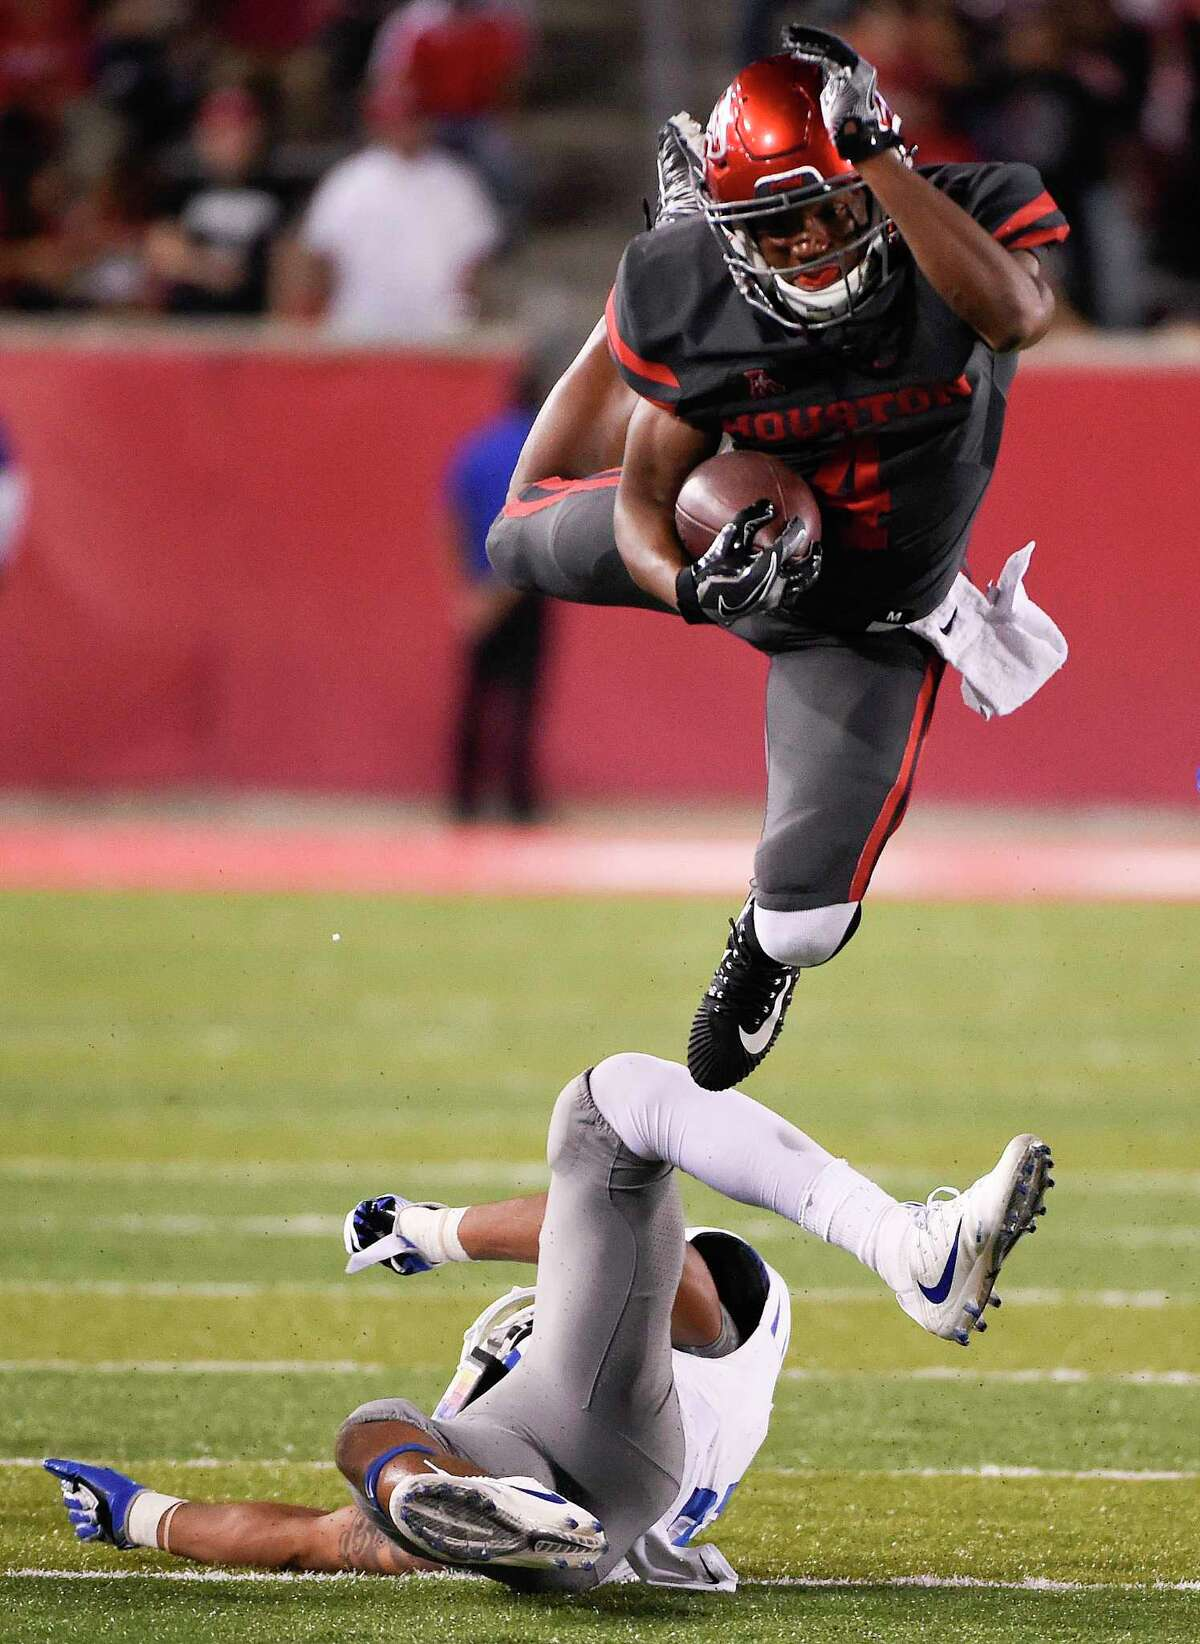 Sophomore D'Eriq King's playmaking ability makes him a tantalizing weapon, with many fans wanting to see more of him, especially at quarterback.